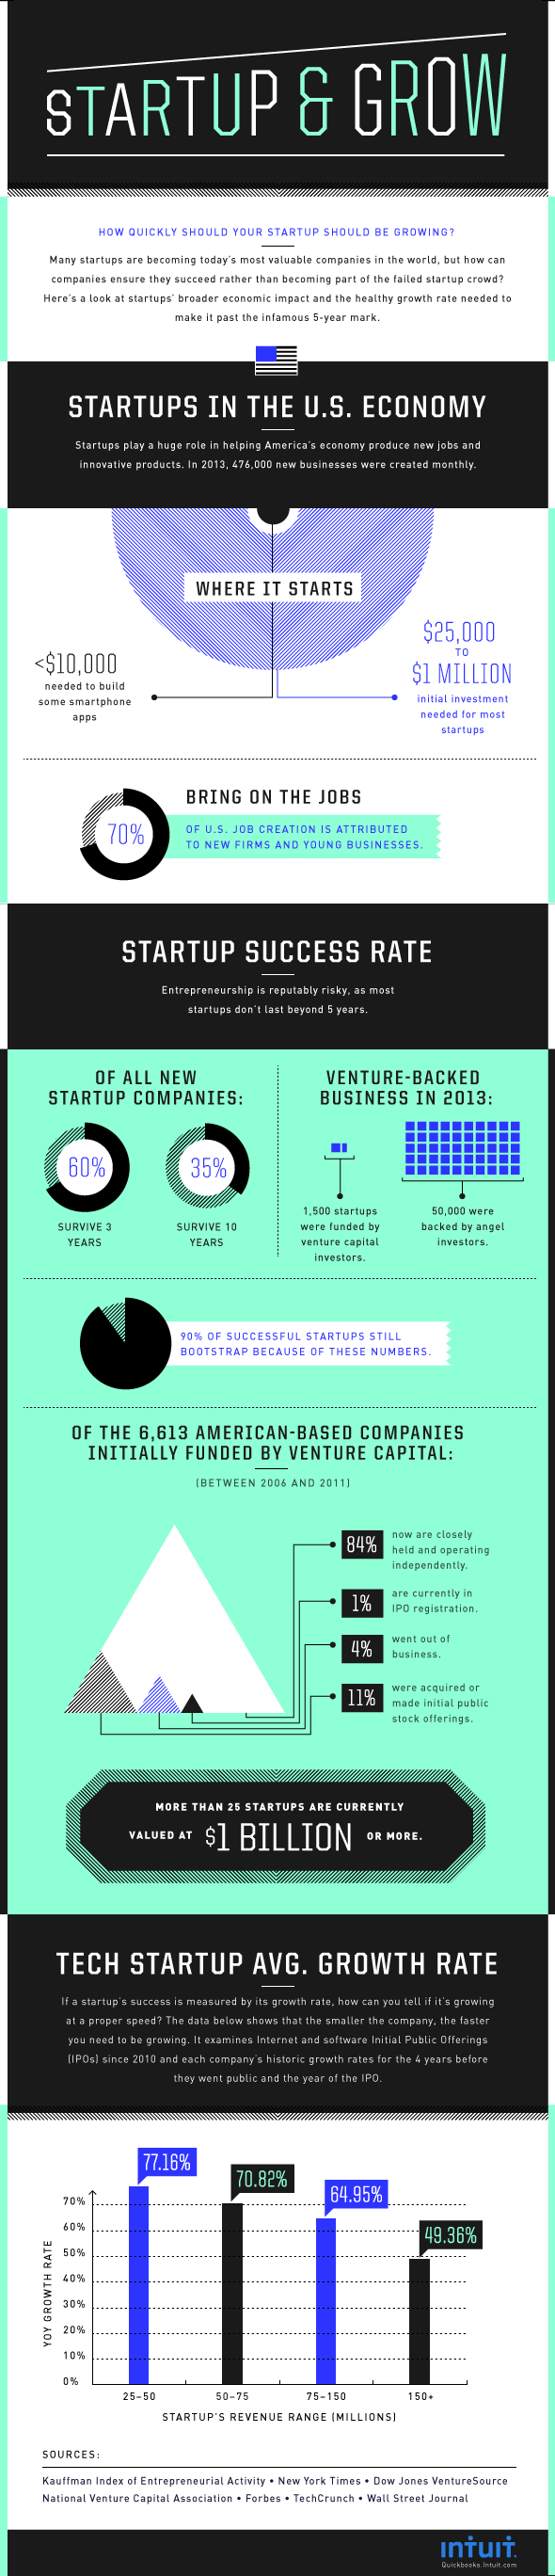 Intuit Startup And Grow Column Five Startup Infographic Business Infographic Start Up